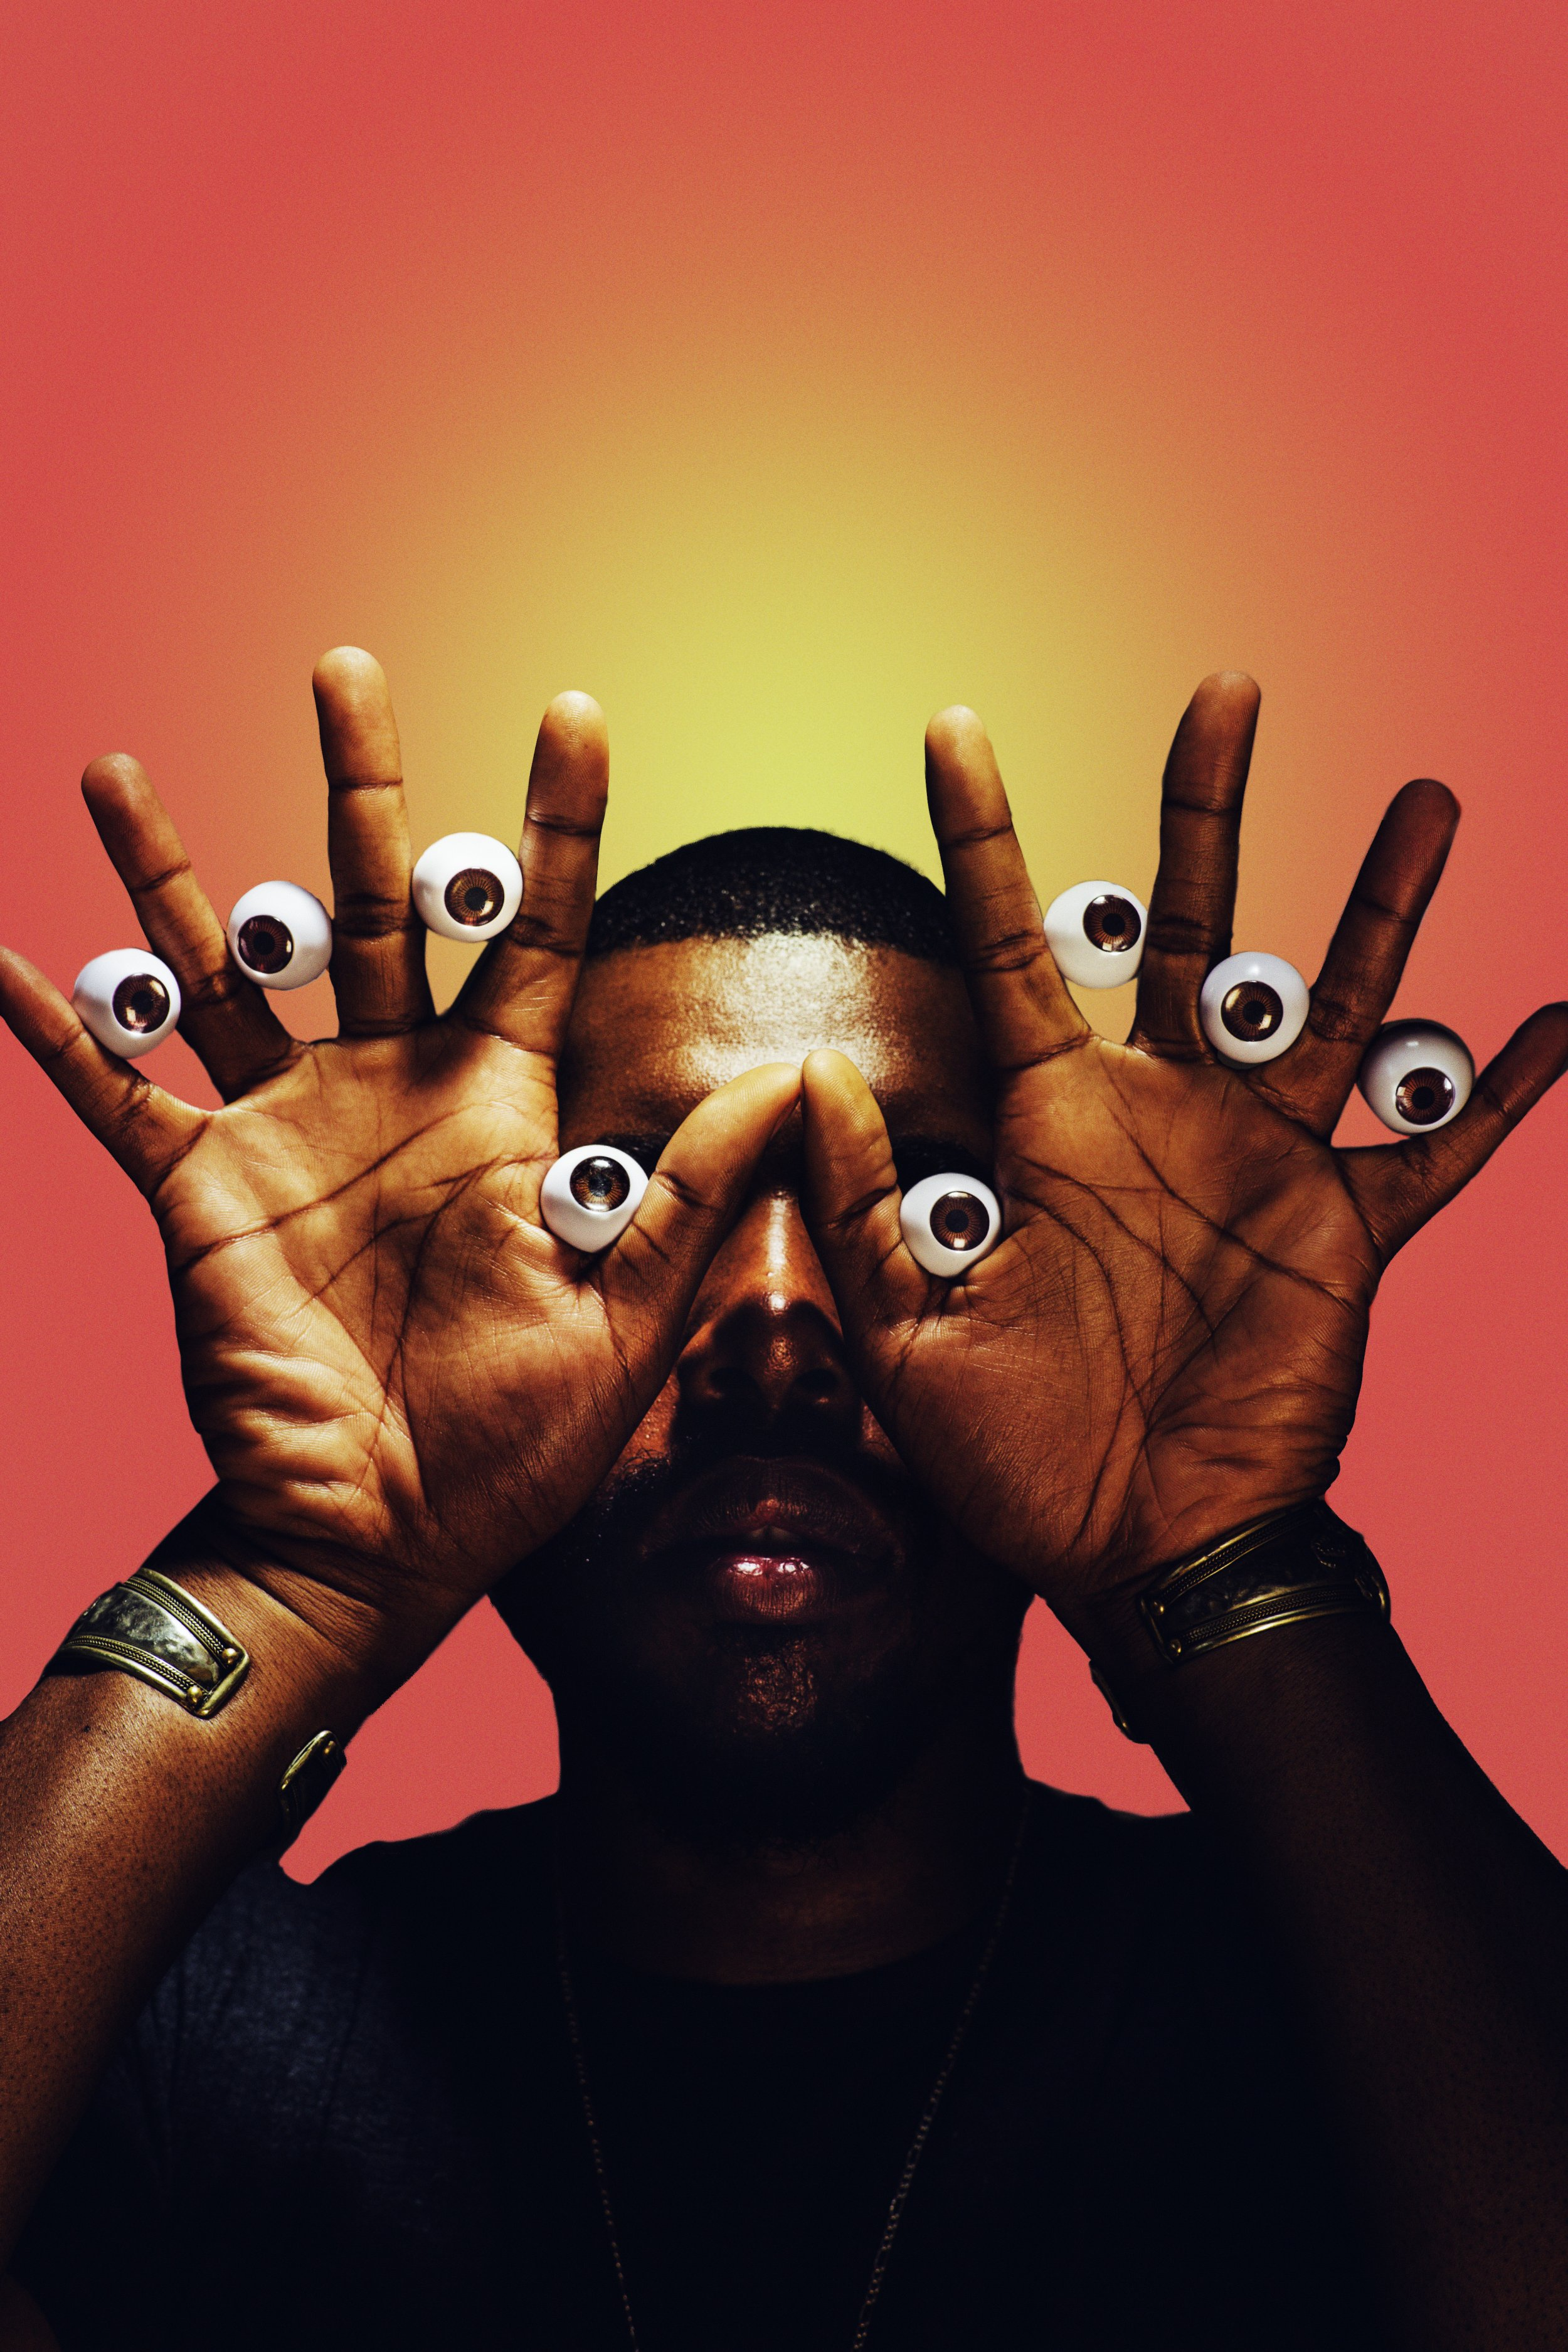 Steven Ellison, better known as Flying Lotus.